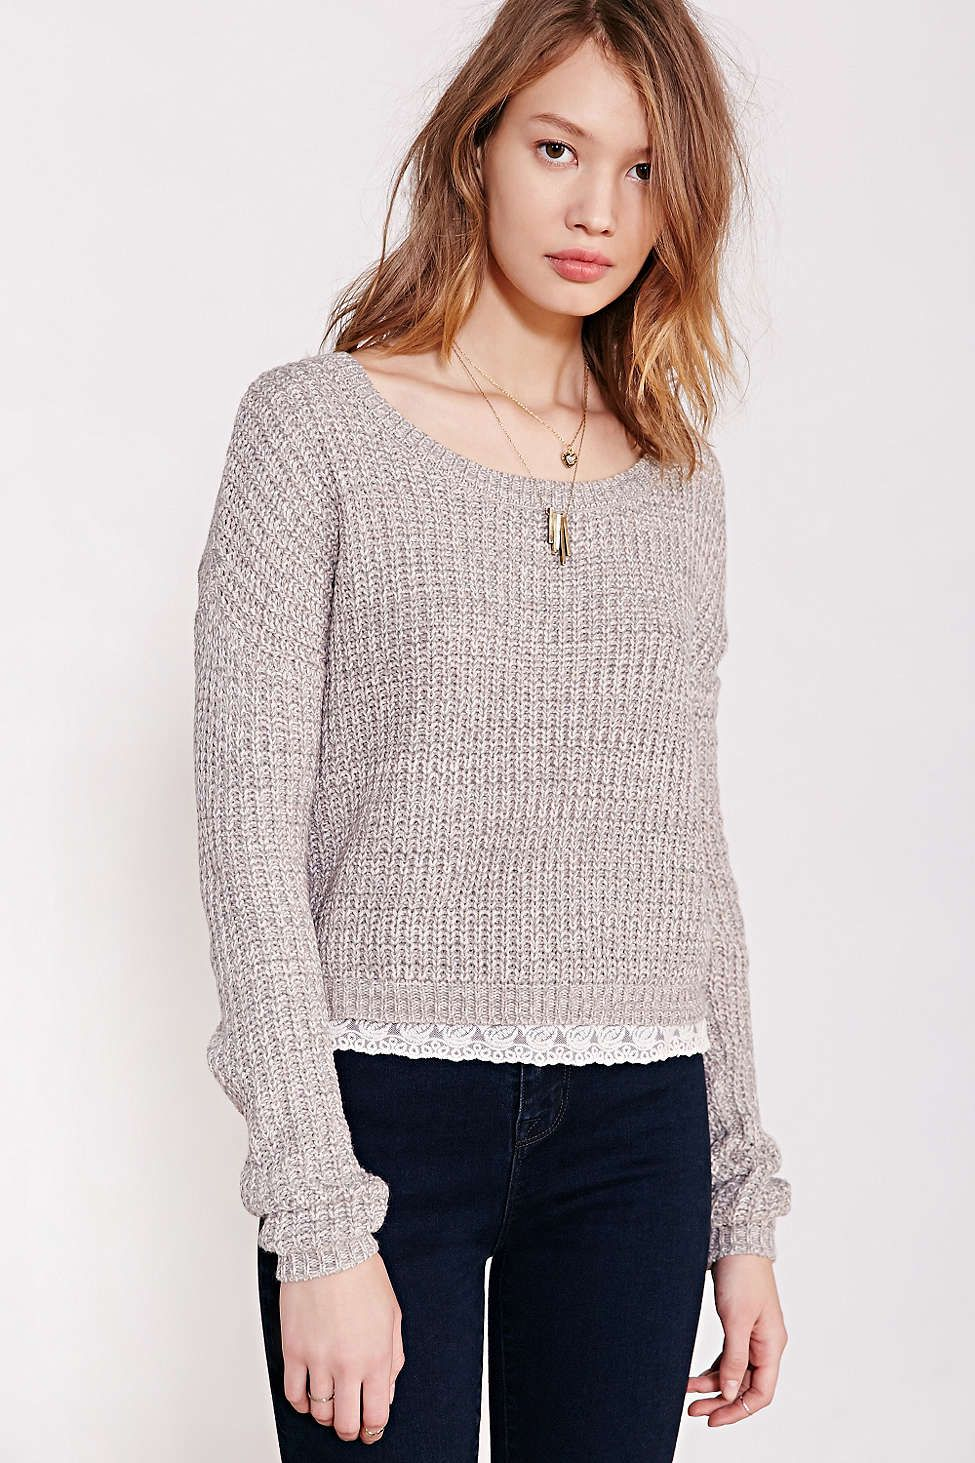 Blu Pepper Lace Trim Pullover Sweater Urban Outfitters Tees